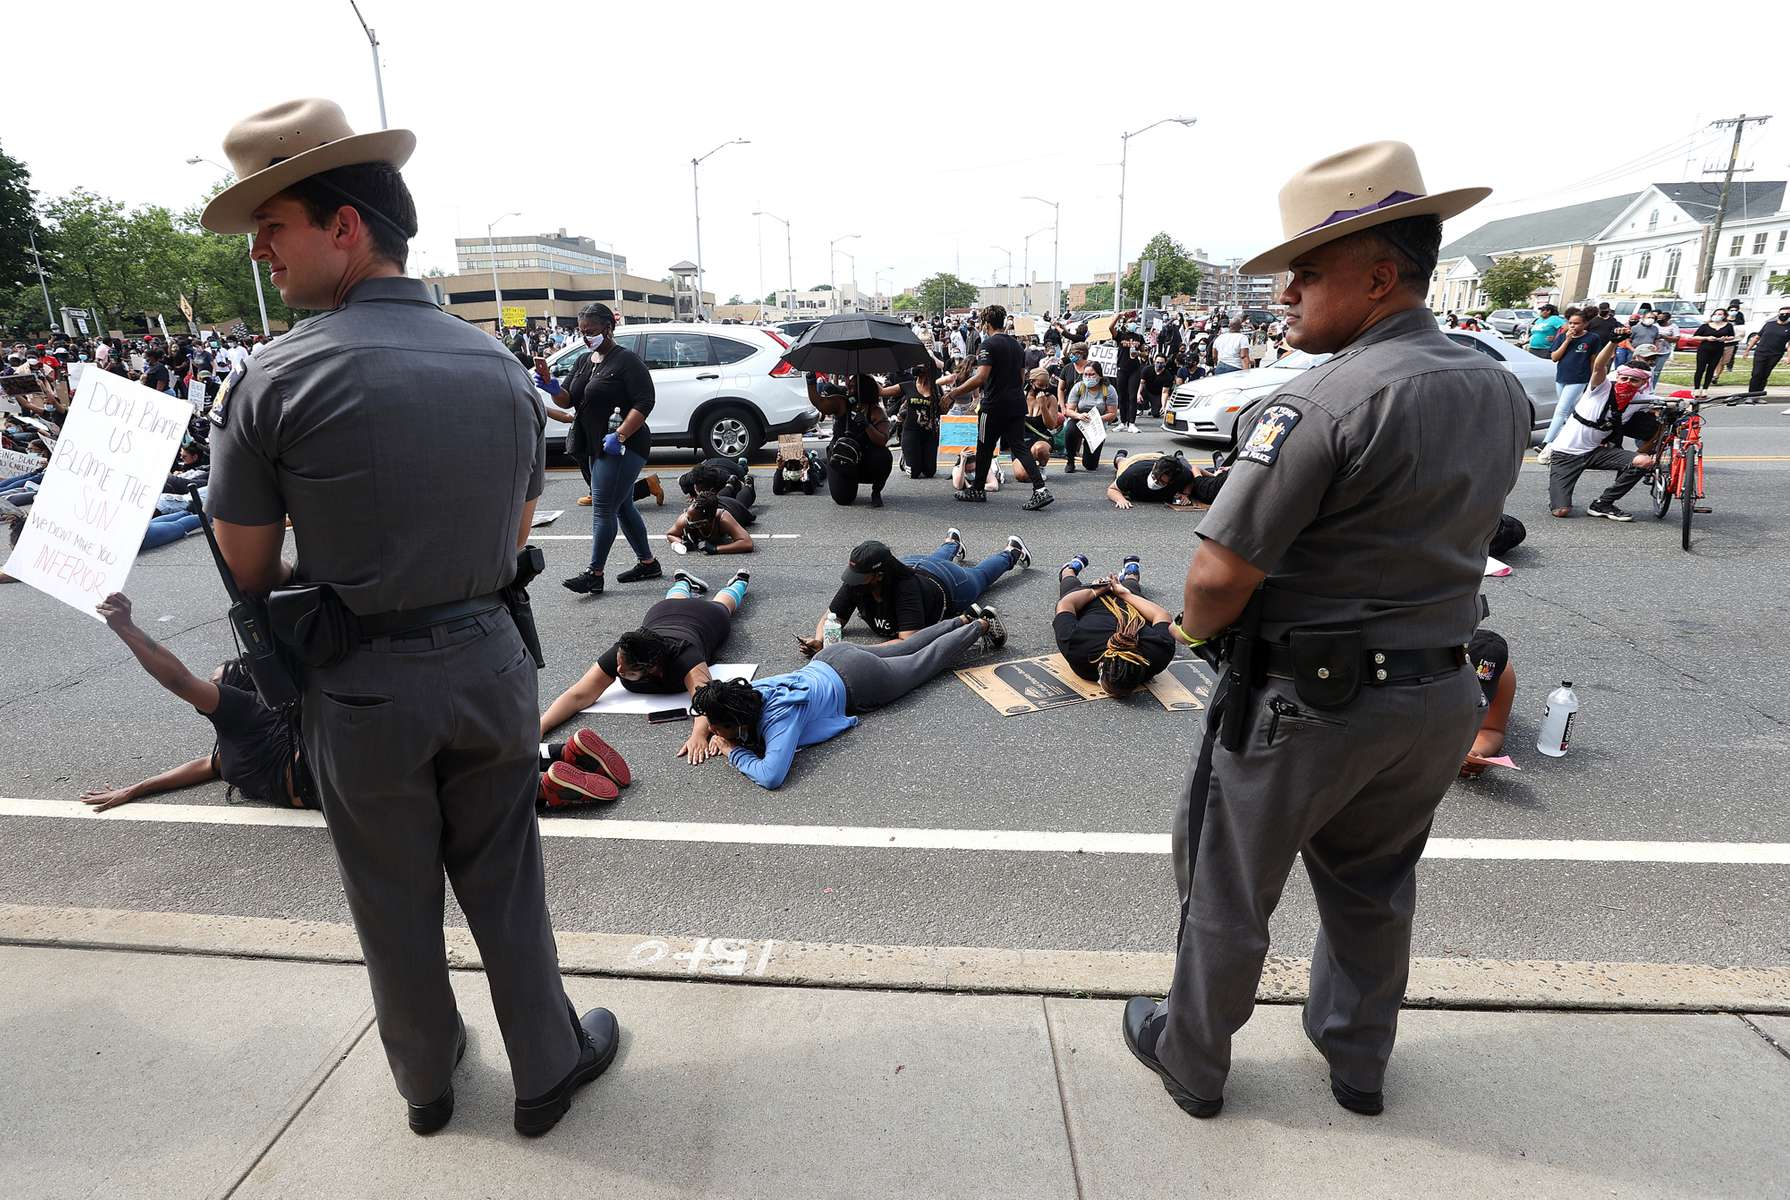 People protest over the killing of George Floyd by a Minneapolis Police officer on June 05, 2020 in Hempstead, New York. The white police officer, Derek Chauvin, has been charged with second-degree murder and the three other officers who participated in the arrest have been charged with aiding and abetting second-degree murder. Floyd's death, the most recent in a series of deaths of black Americans at the hands of police, has set off days and nights of protests across the country.